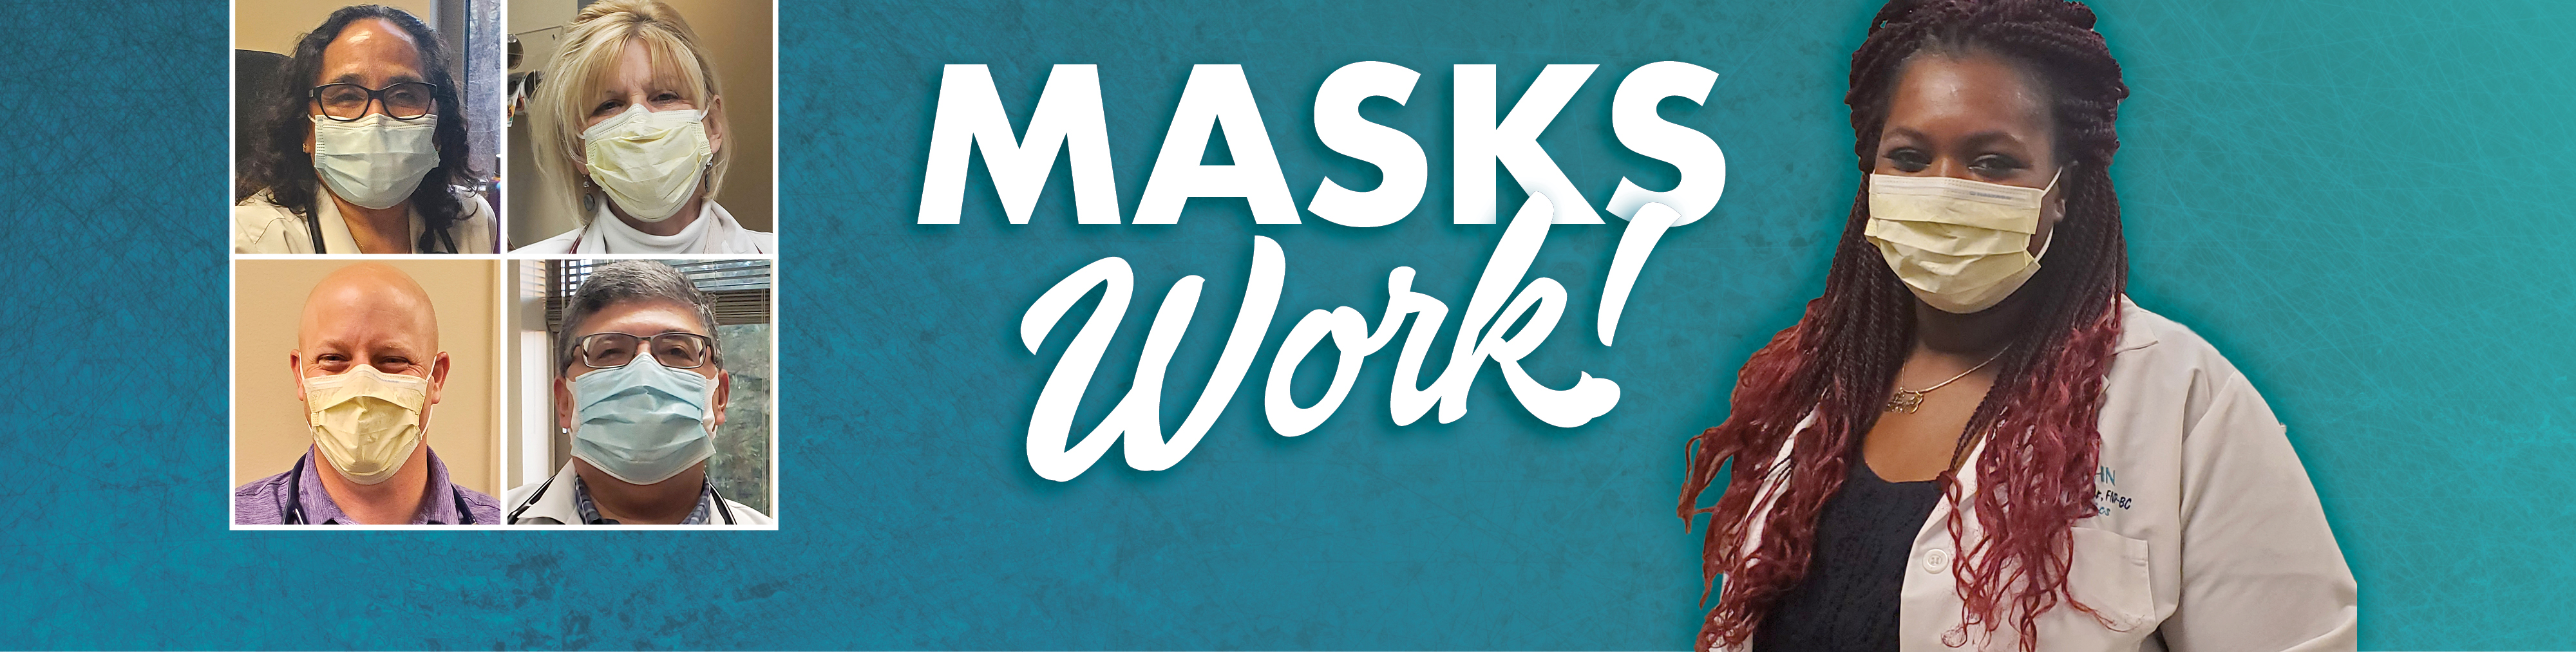 Masks Work